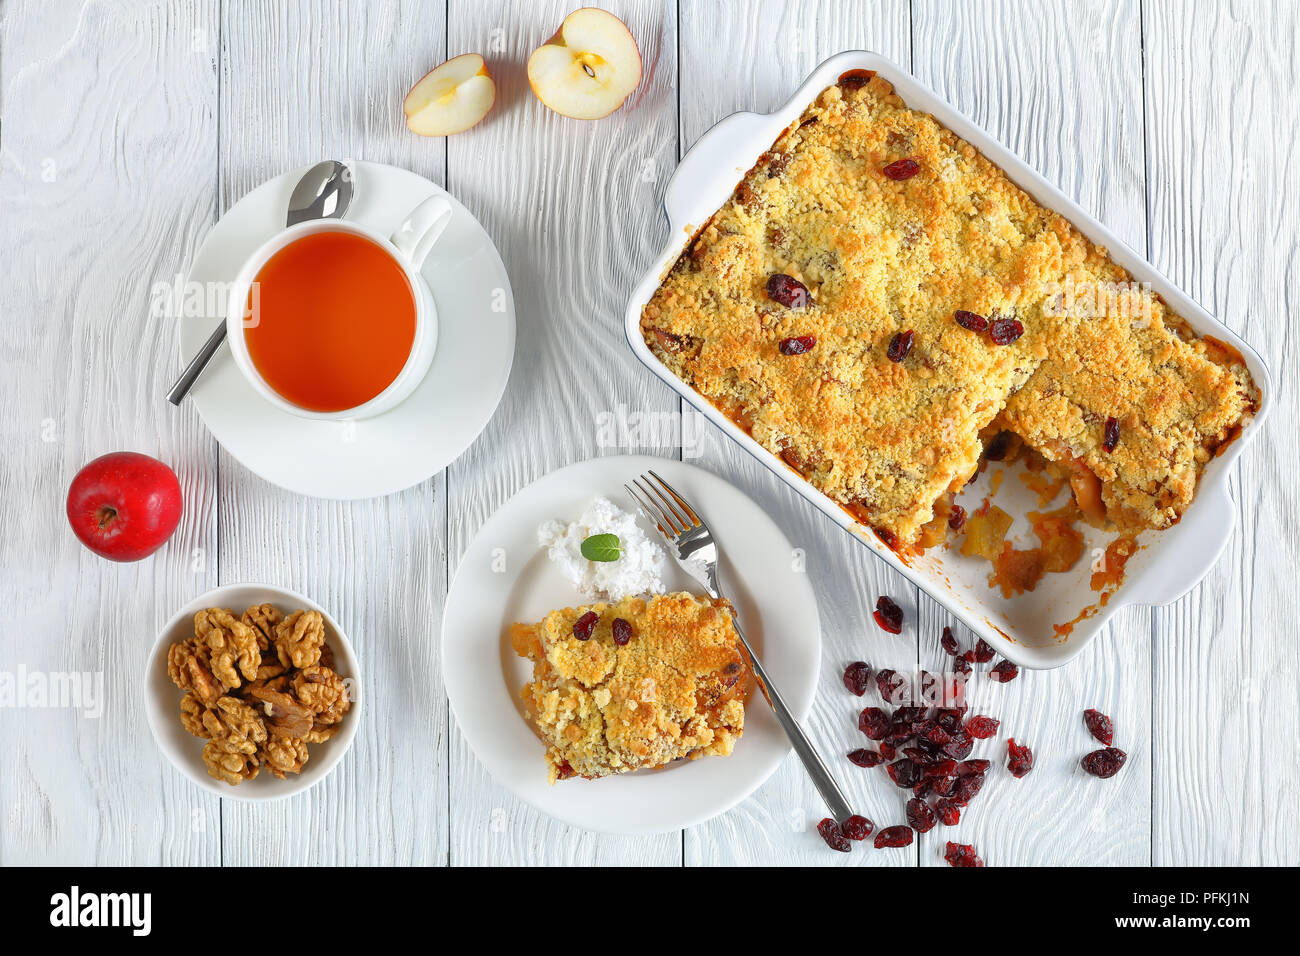 breakfast set -  apple crumble or apple crisp in baking dish and a portion on plate with coconut cream and  cup of tea on table, view from above, clos - Stock Image